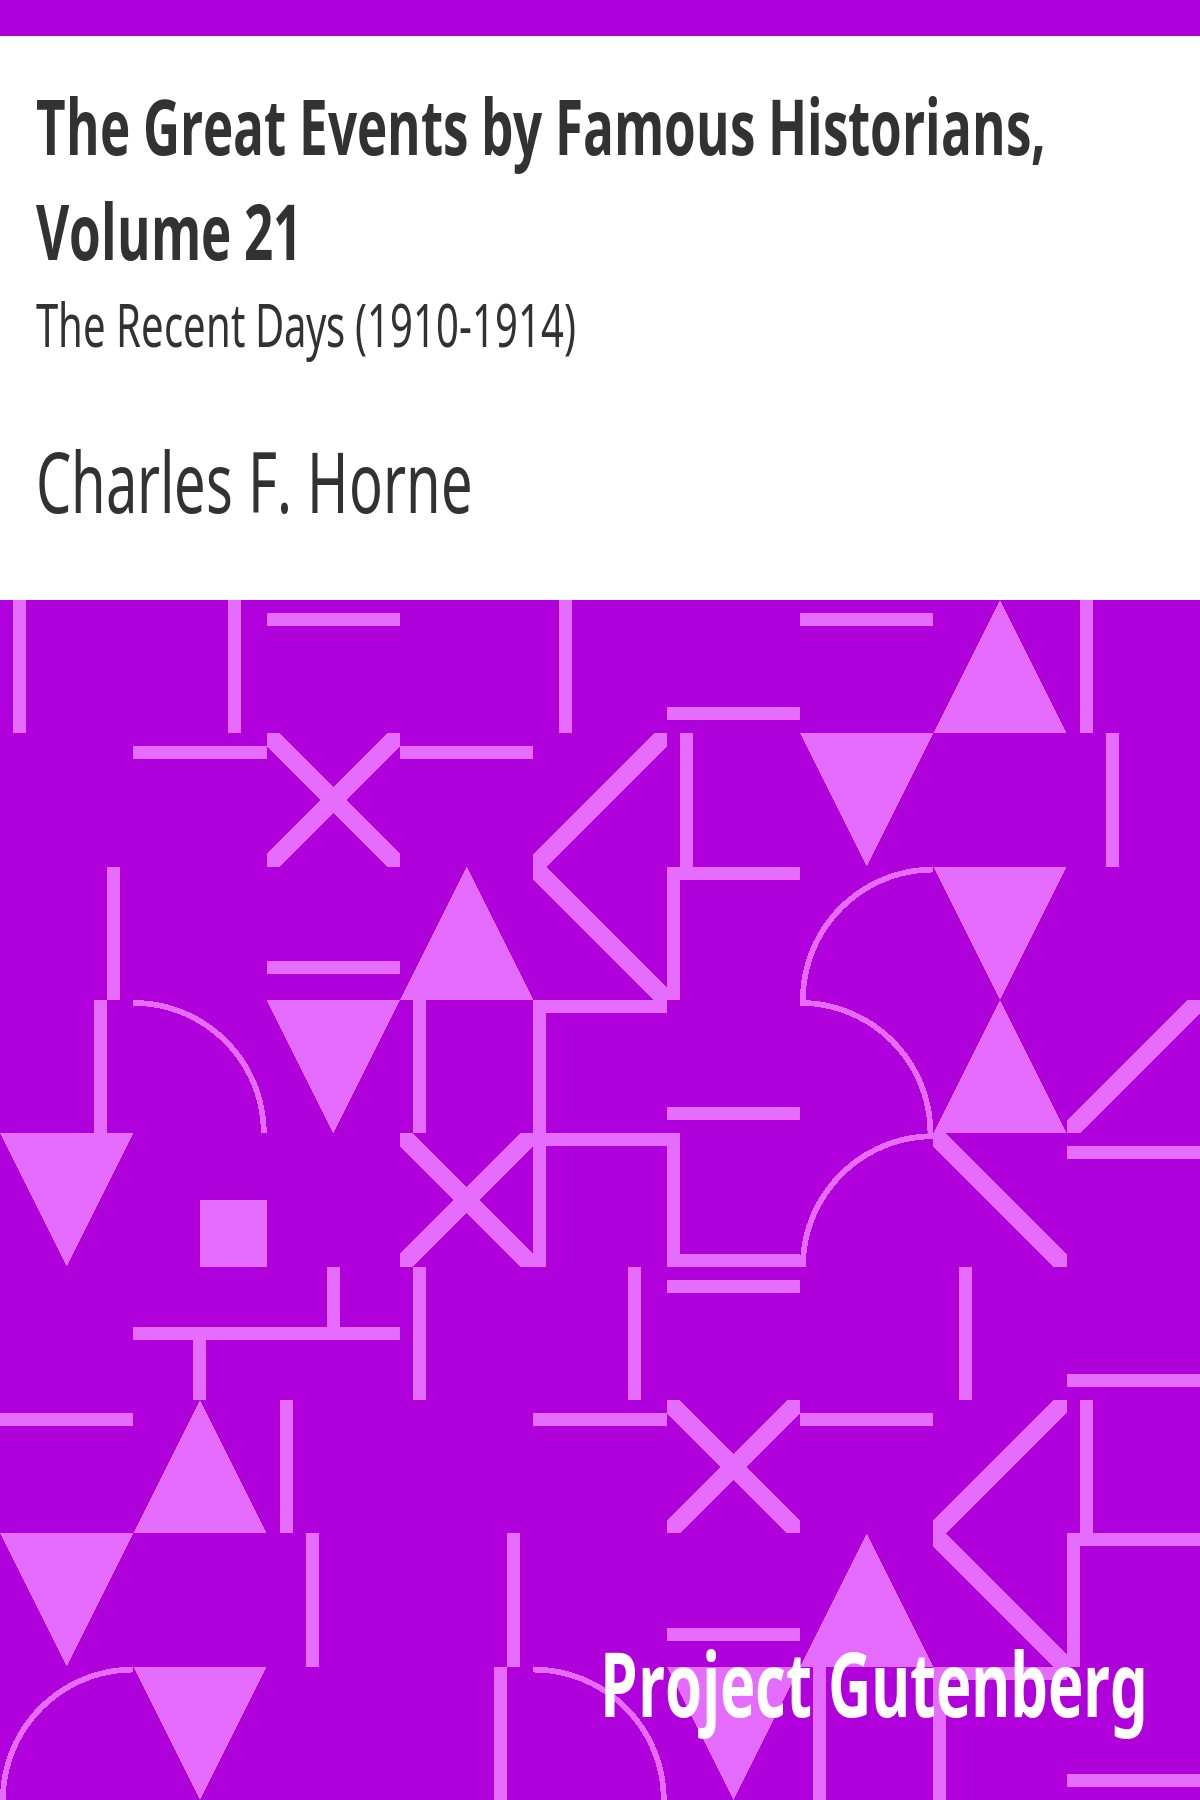 Charles Francis Horne The Great Events by Famous Historians, Volume 21 The Recent Days (1910-1914)